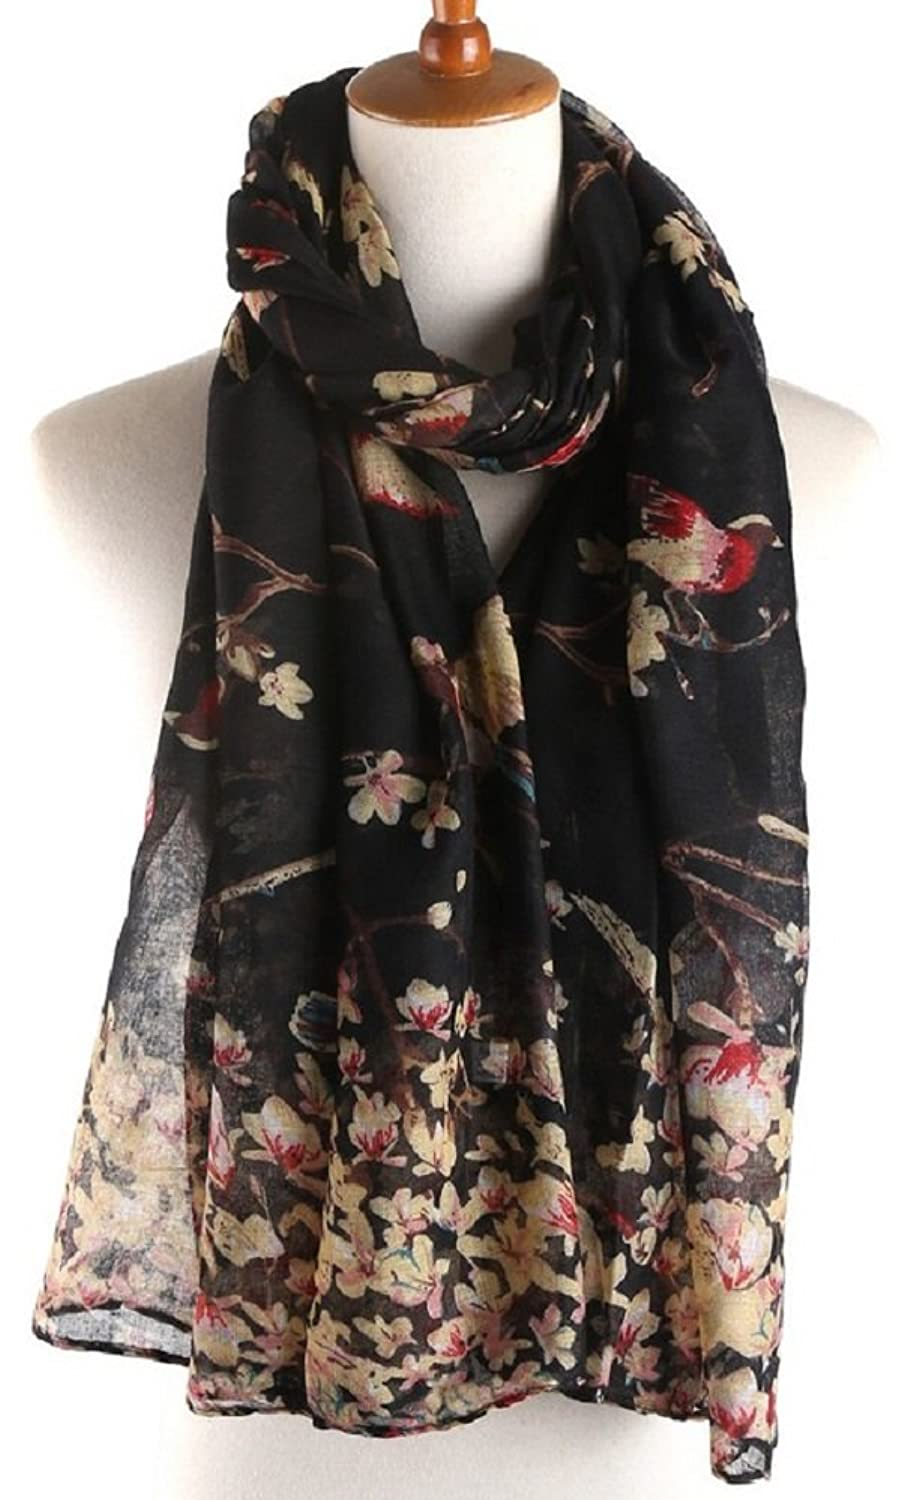 Bettyhome Branch Bird Print Women's Scarf Shawl Lightweight 70.87 inch x 35.43 inch Diff Color